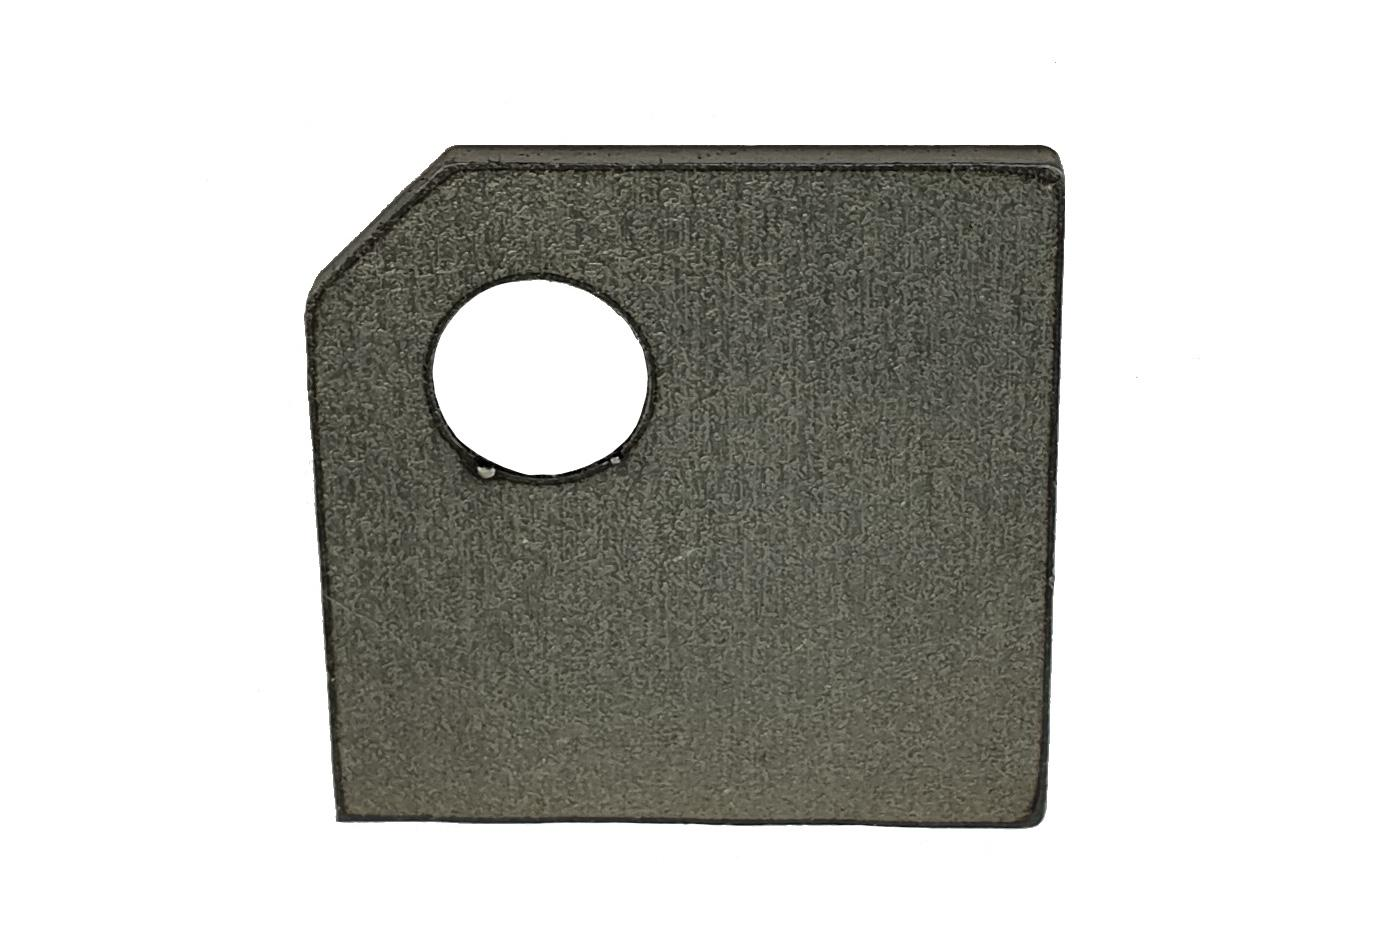 A glass clip and screw suitable for a variety of Aga stove by Stove Industry Supplies.